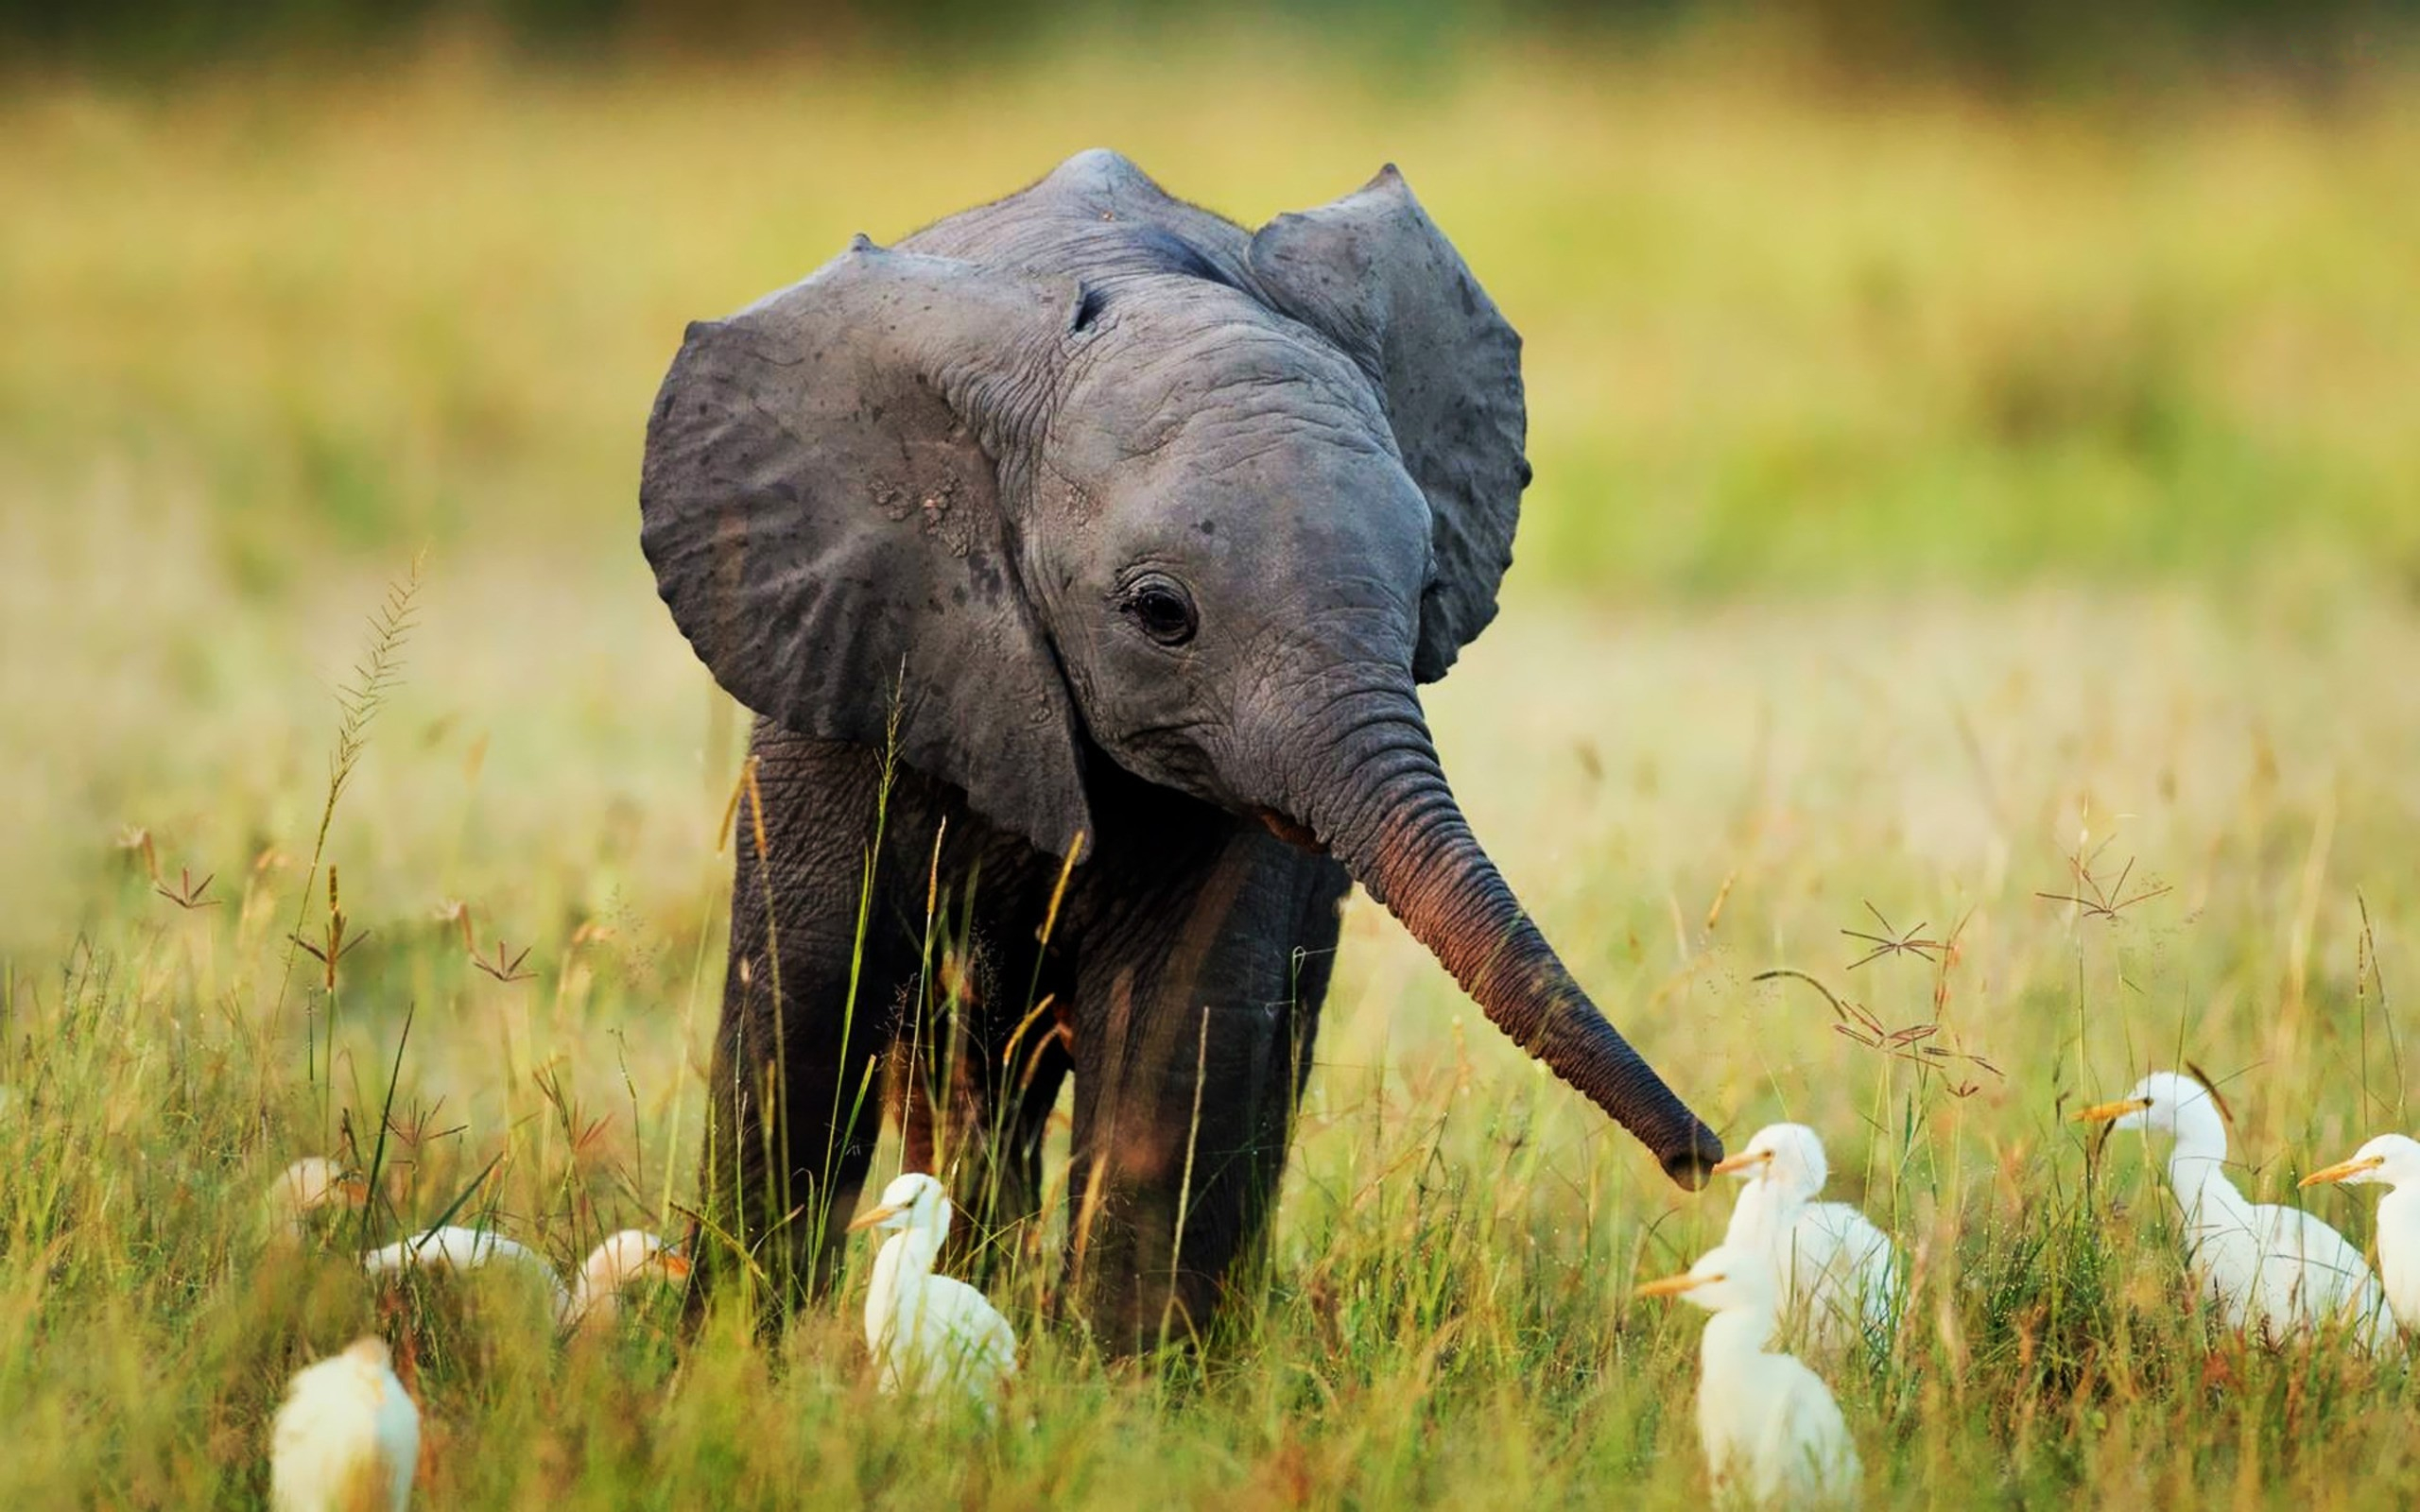 Cute Animal Wallpapers Free: Android Wallpaper: Too Cute